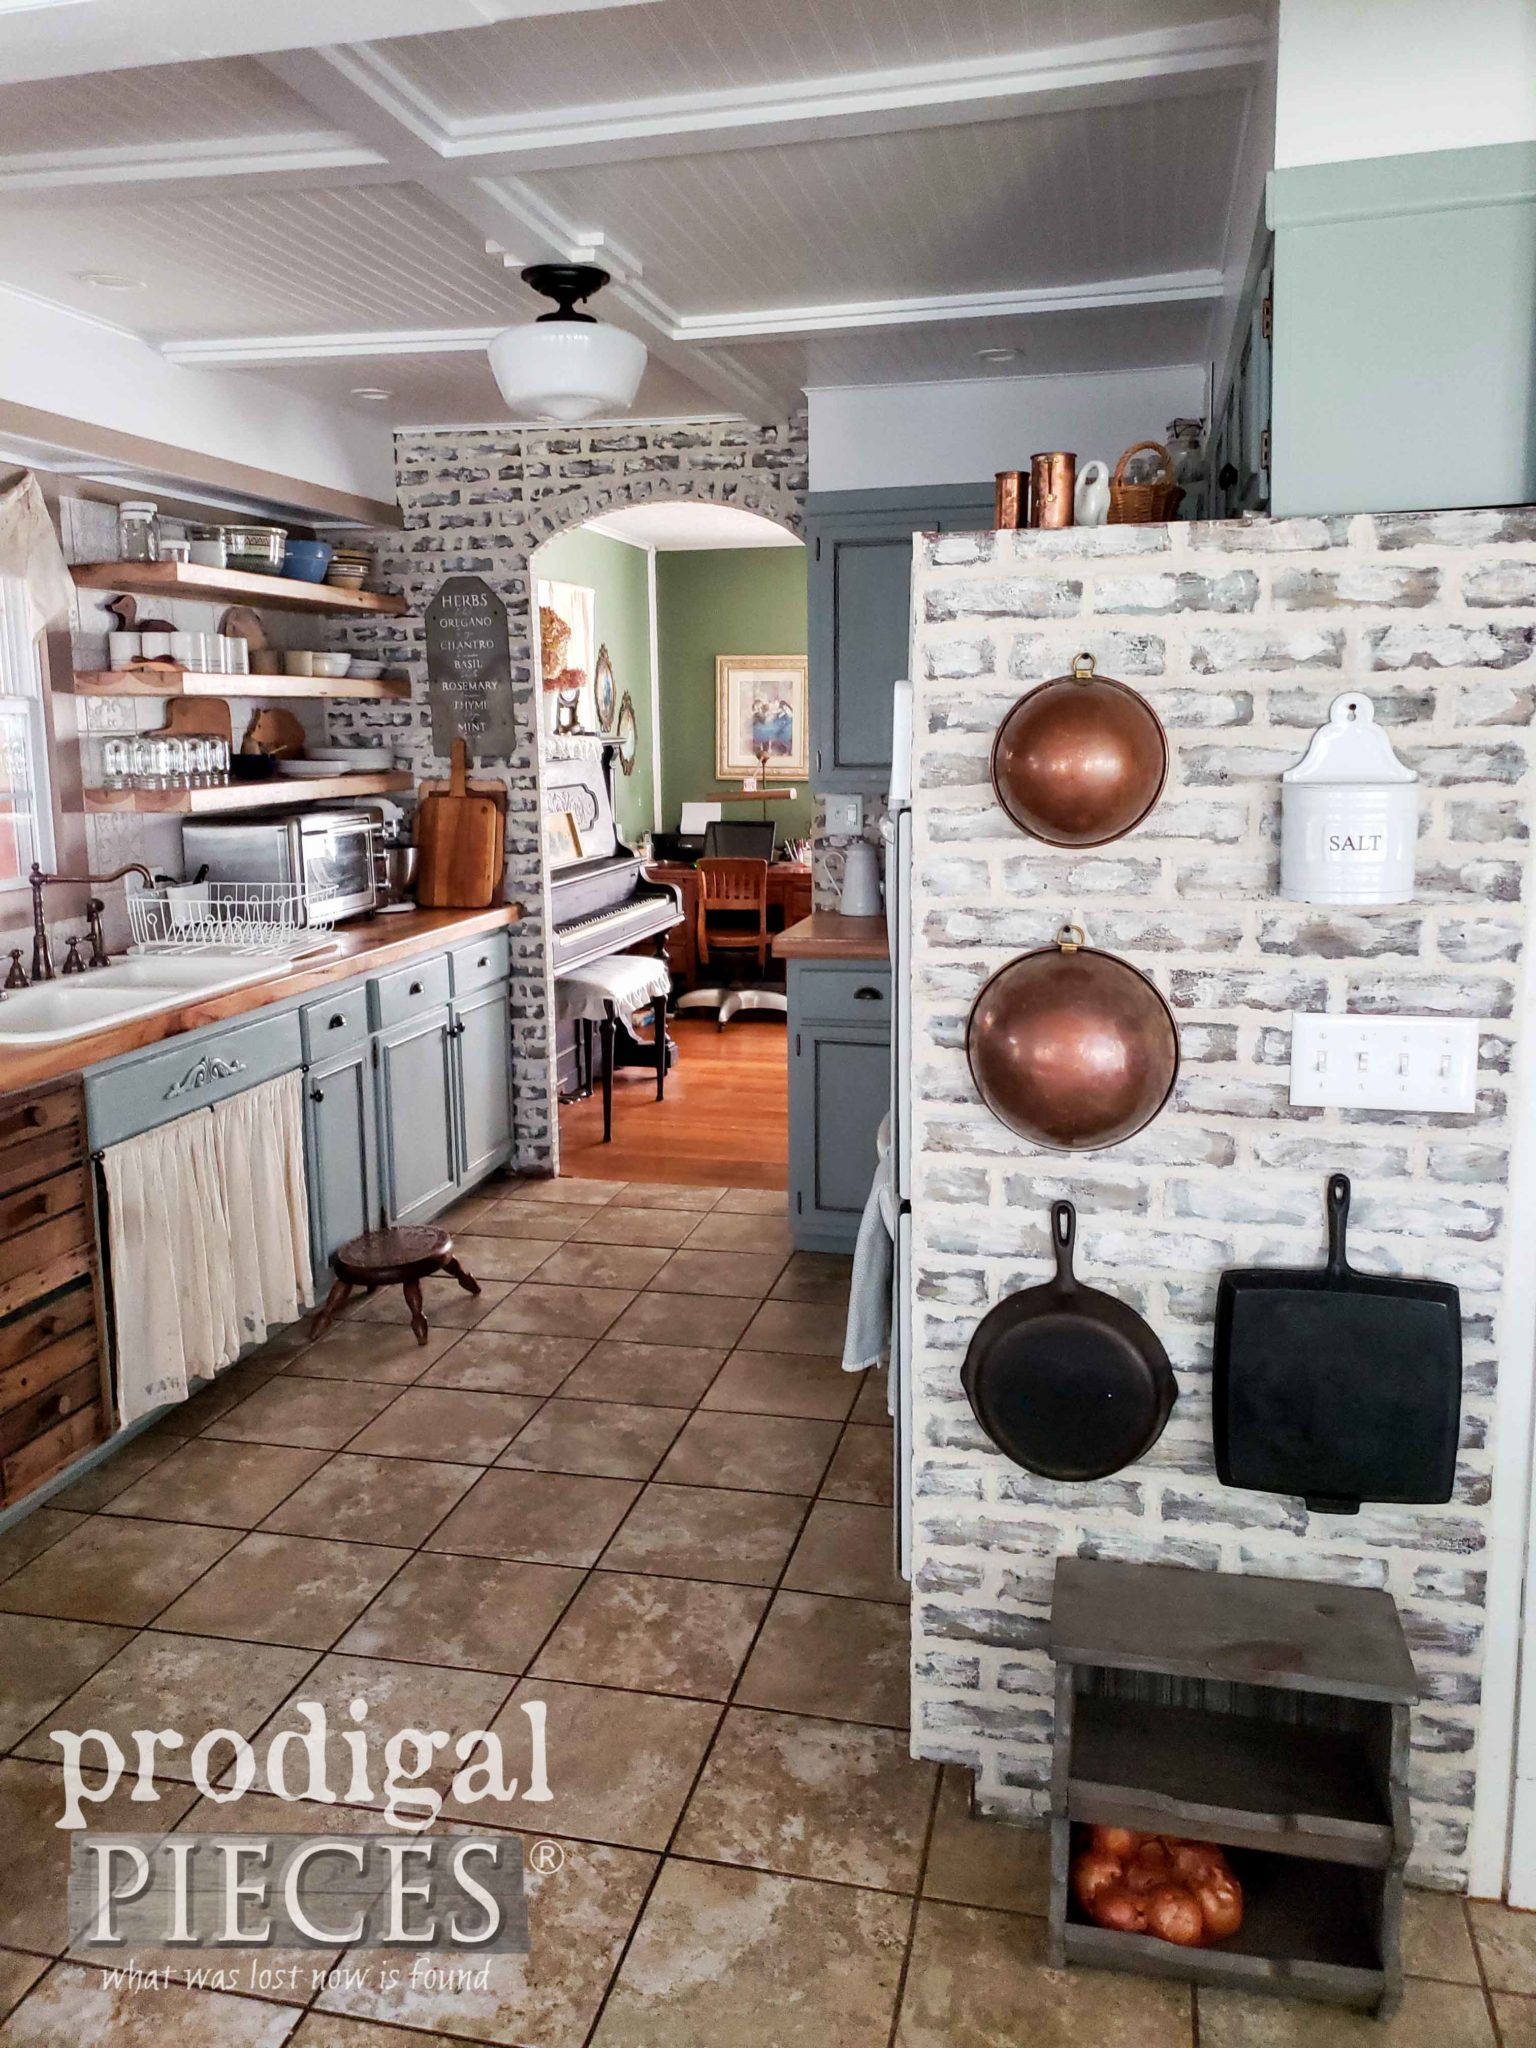 Old World Style Kitchen with Rustic Farmhouse Accents by Prodigal Pieces | prodigalpieces.com